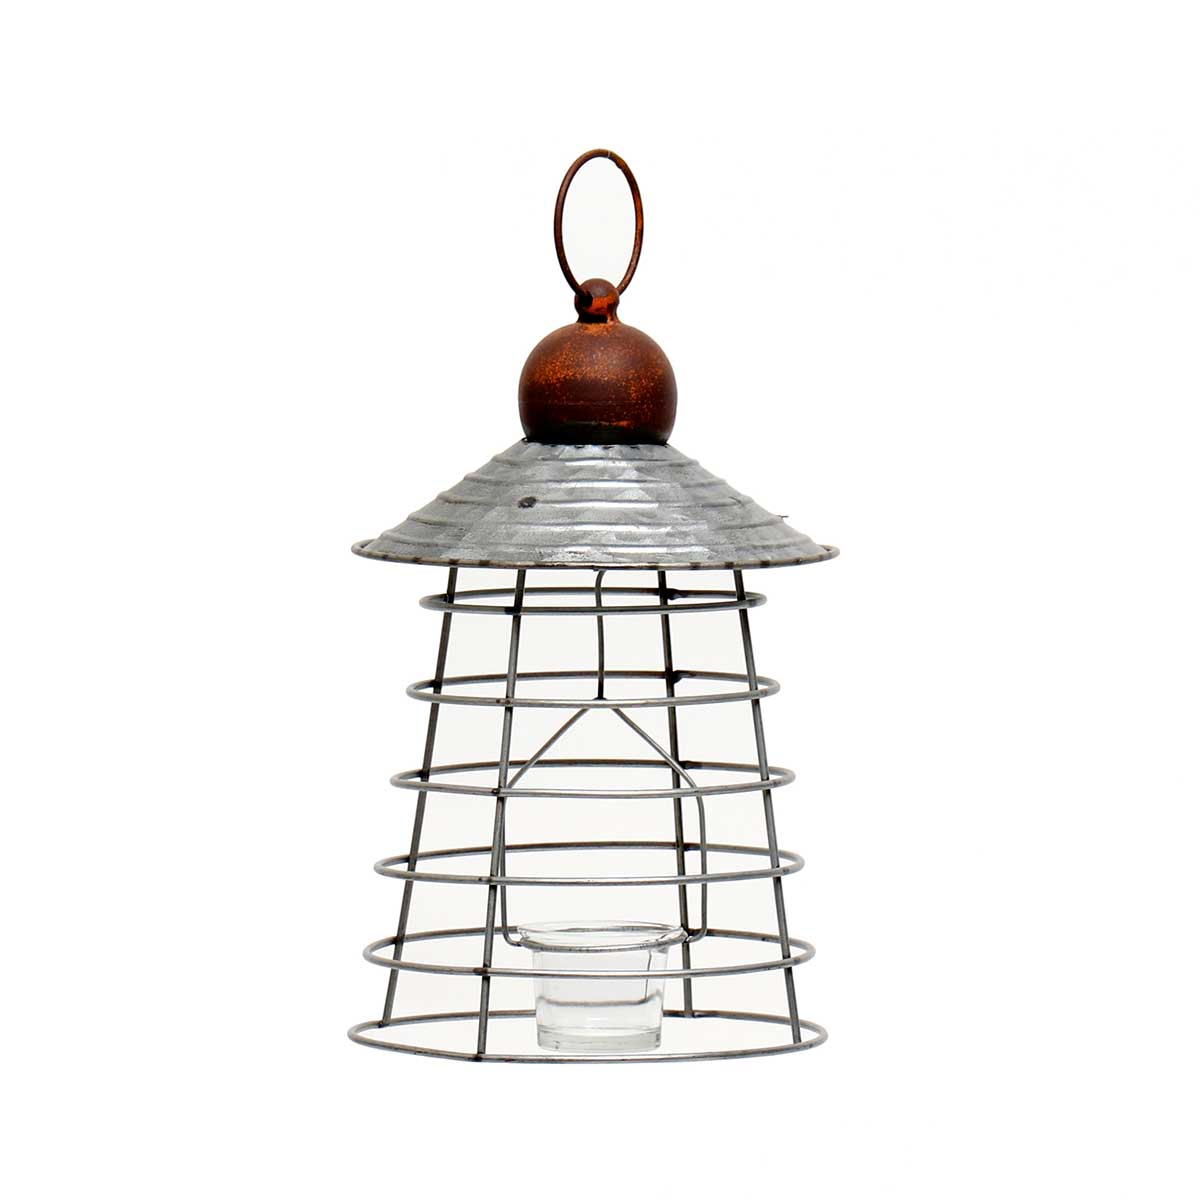 "METAL HANGING LANTERN WITH GLASS VOTIVE HOLDER 7.25""x14"""